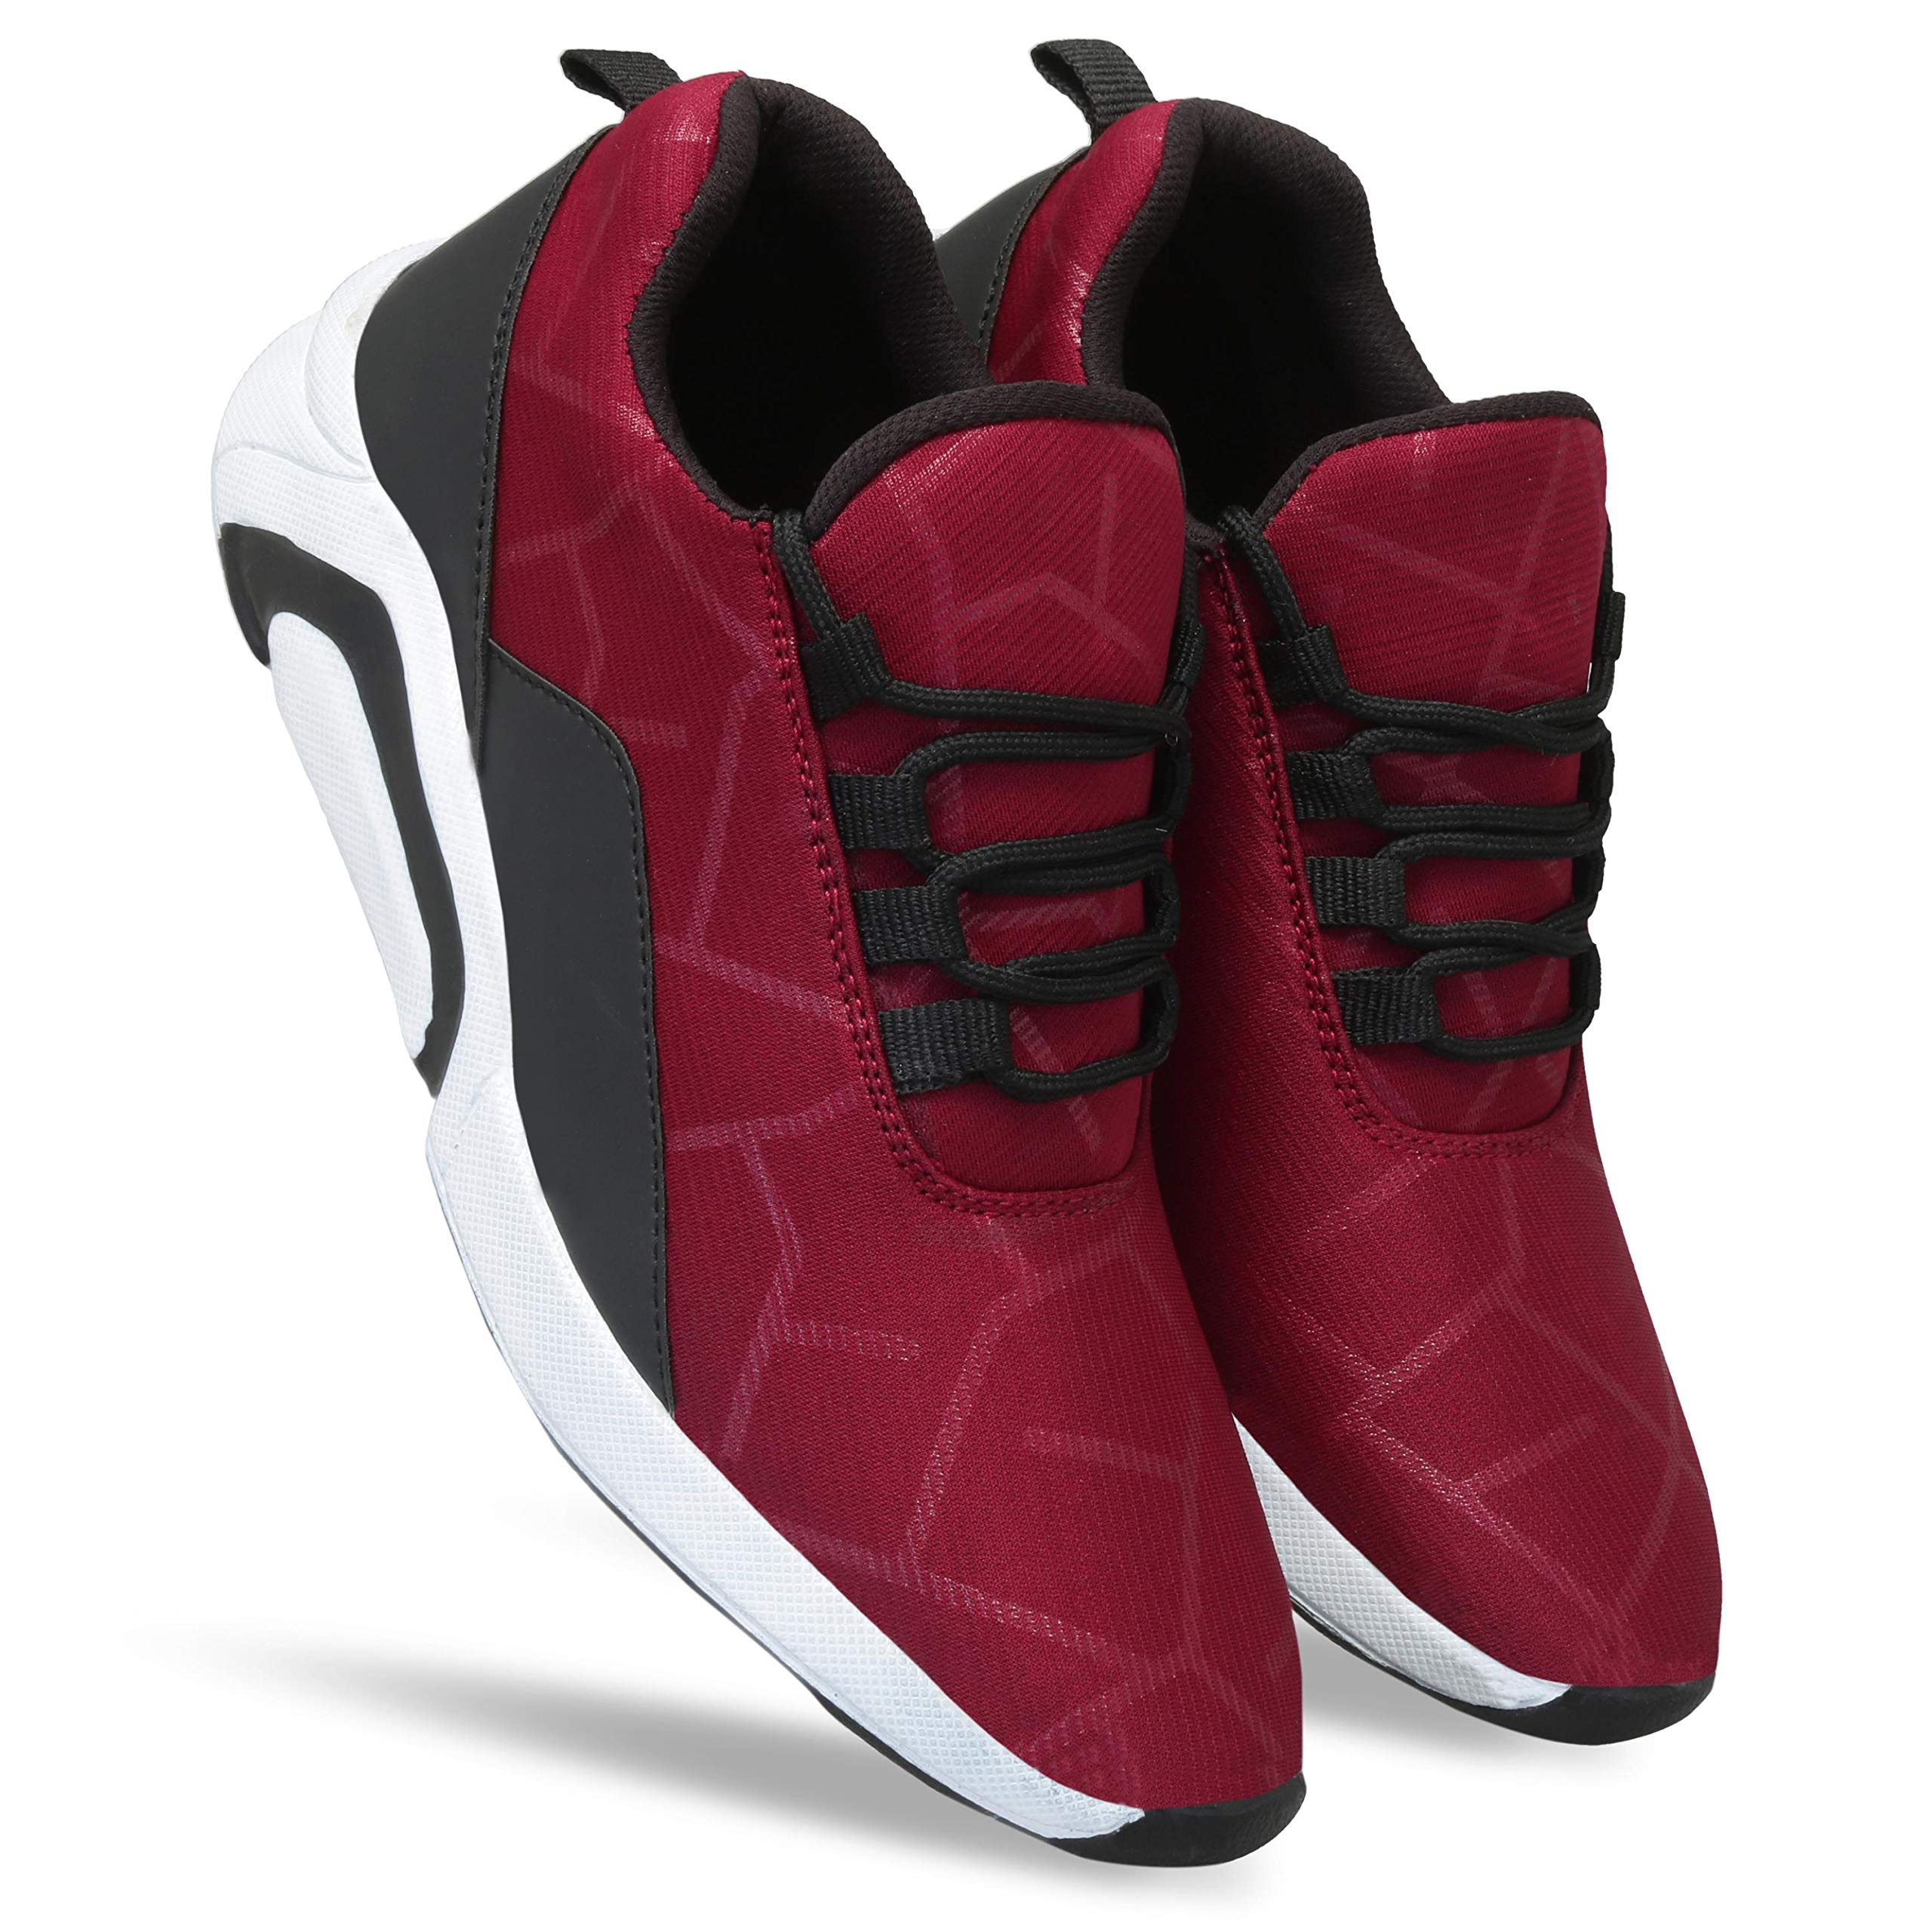 layasa Men's Running Sports Shoes for